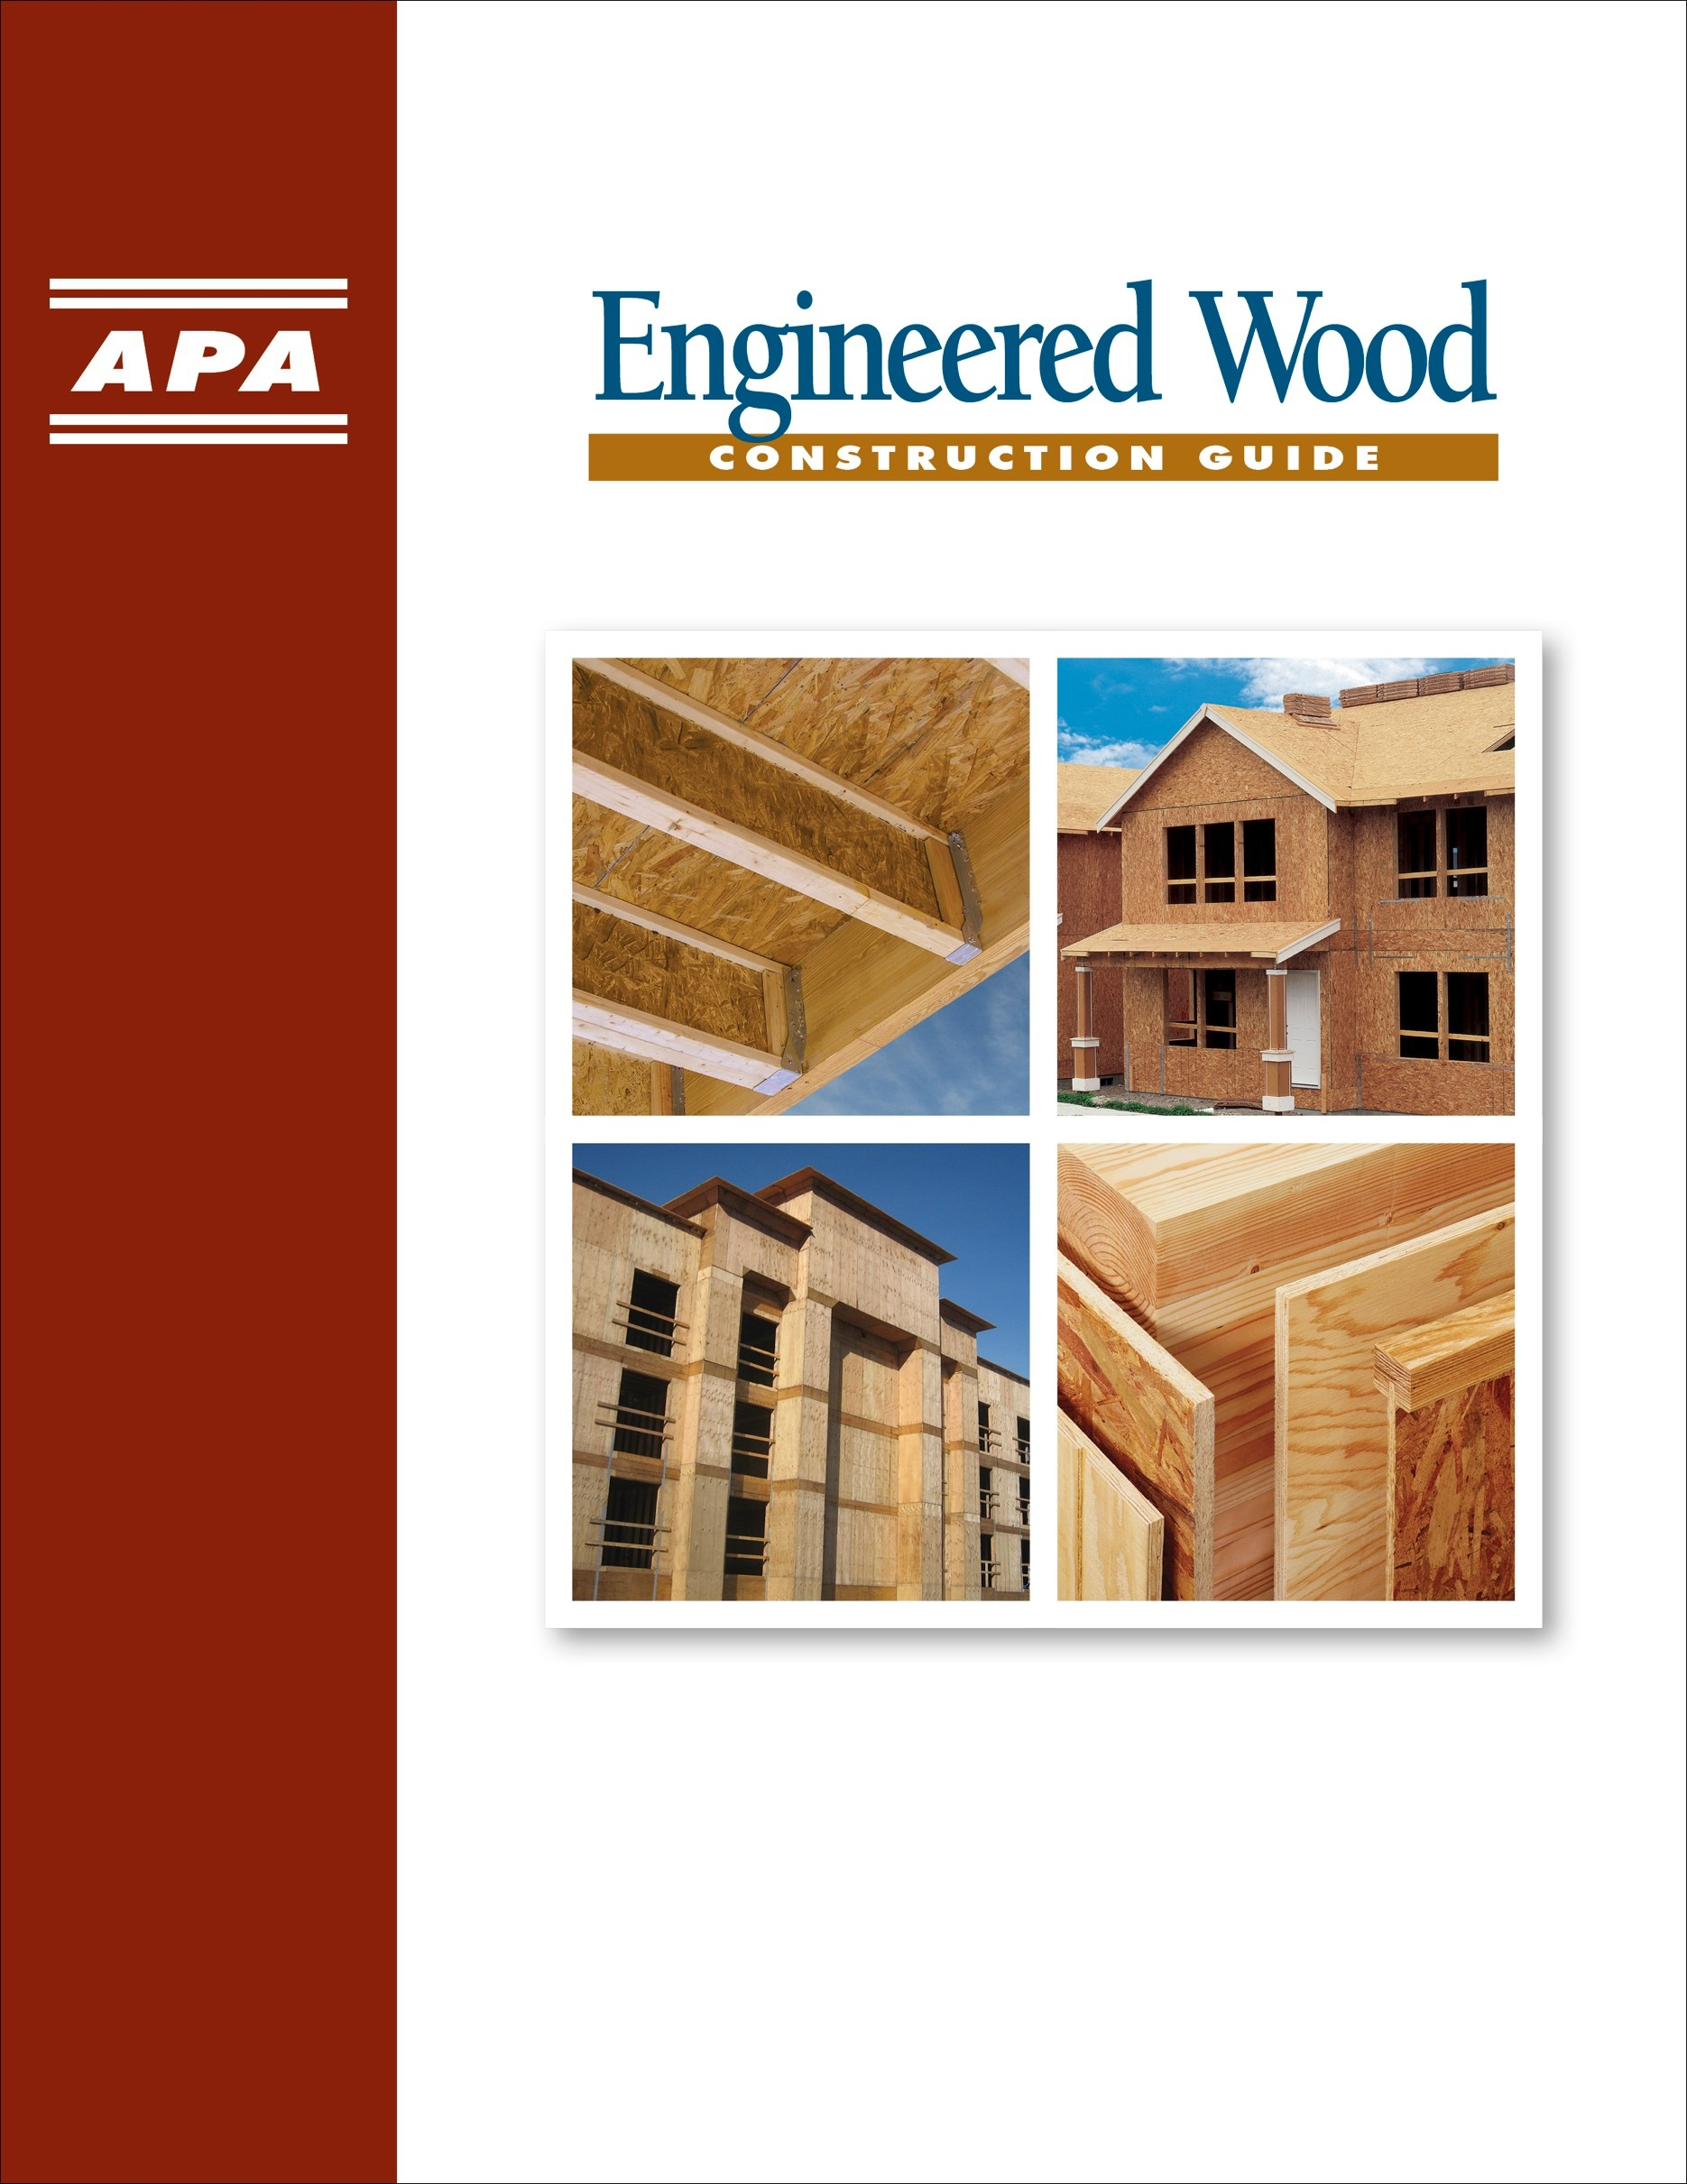 Apa publishes updated engineered wood construction guide for Engineered wood framing